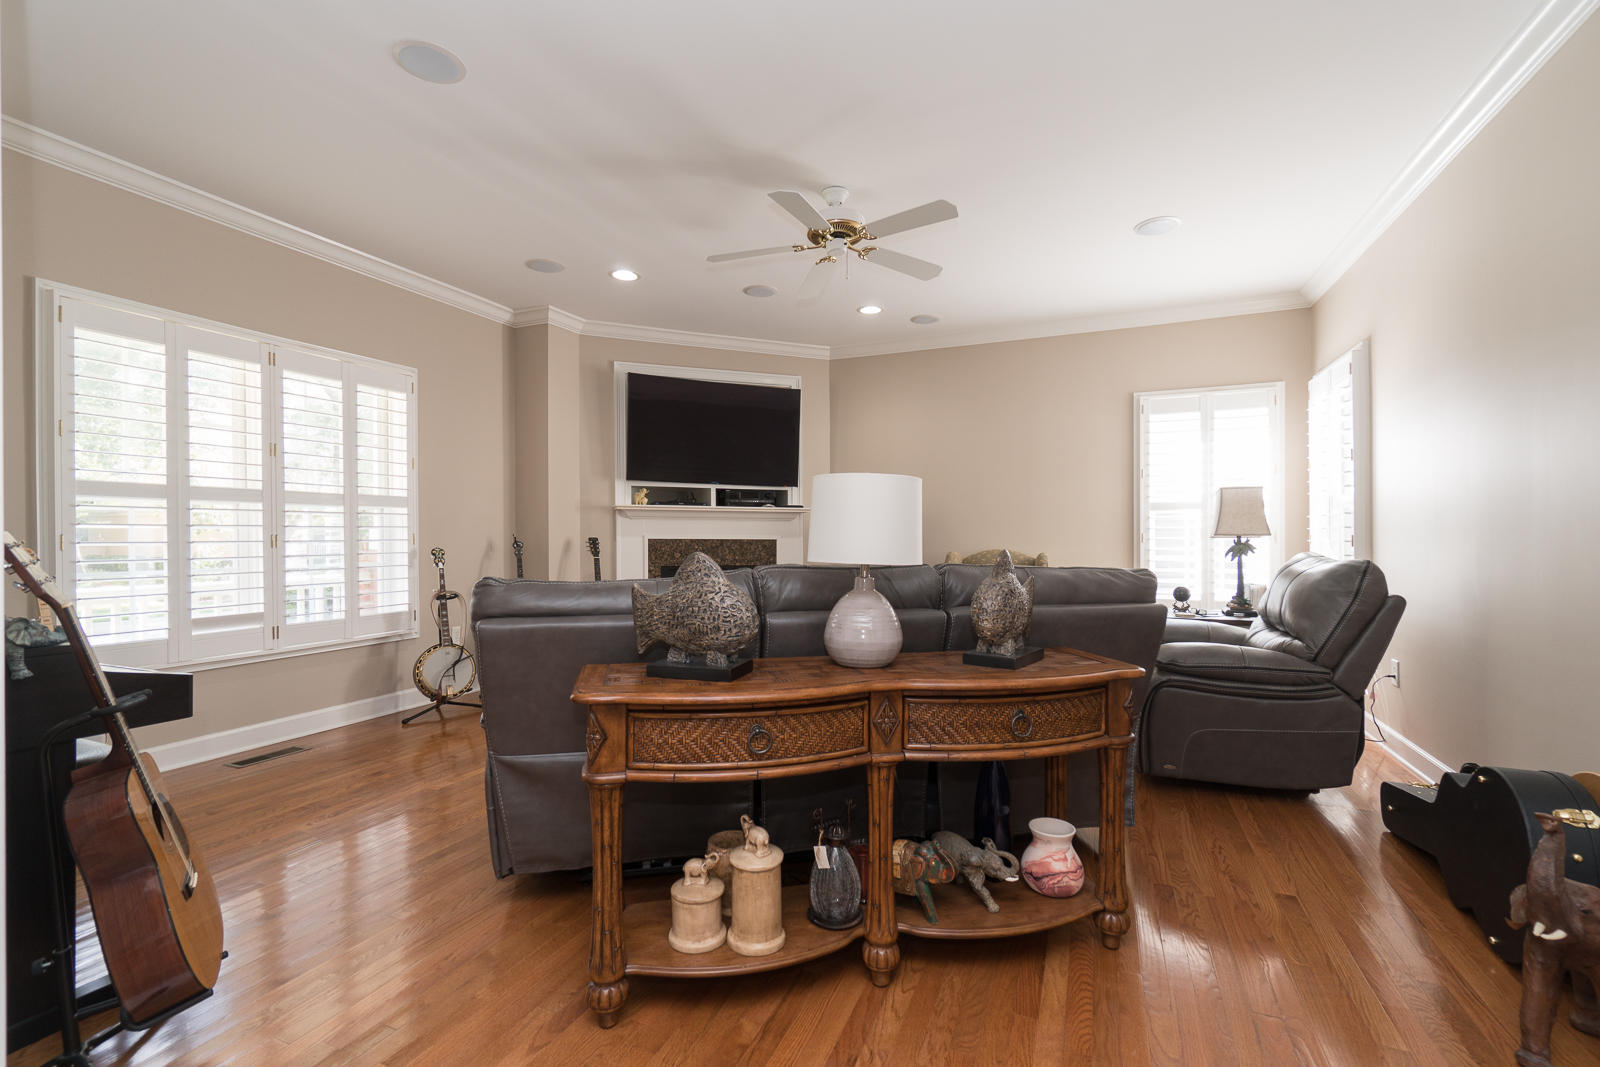 Ainsdale at Shadowmoss Plantation Homes For Sale - 233 Ainsdale, Charleston, SC - 6